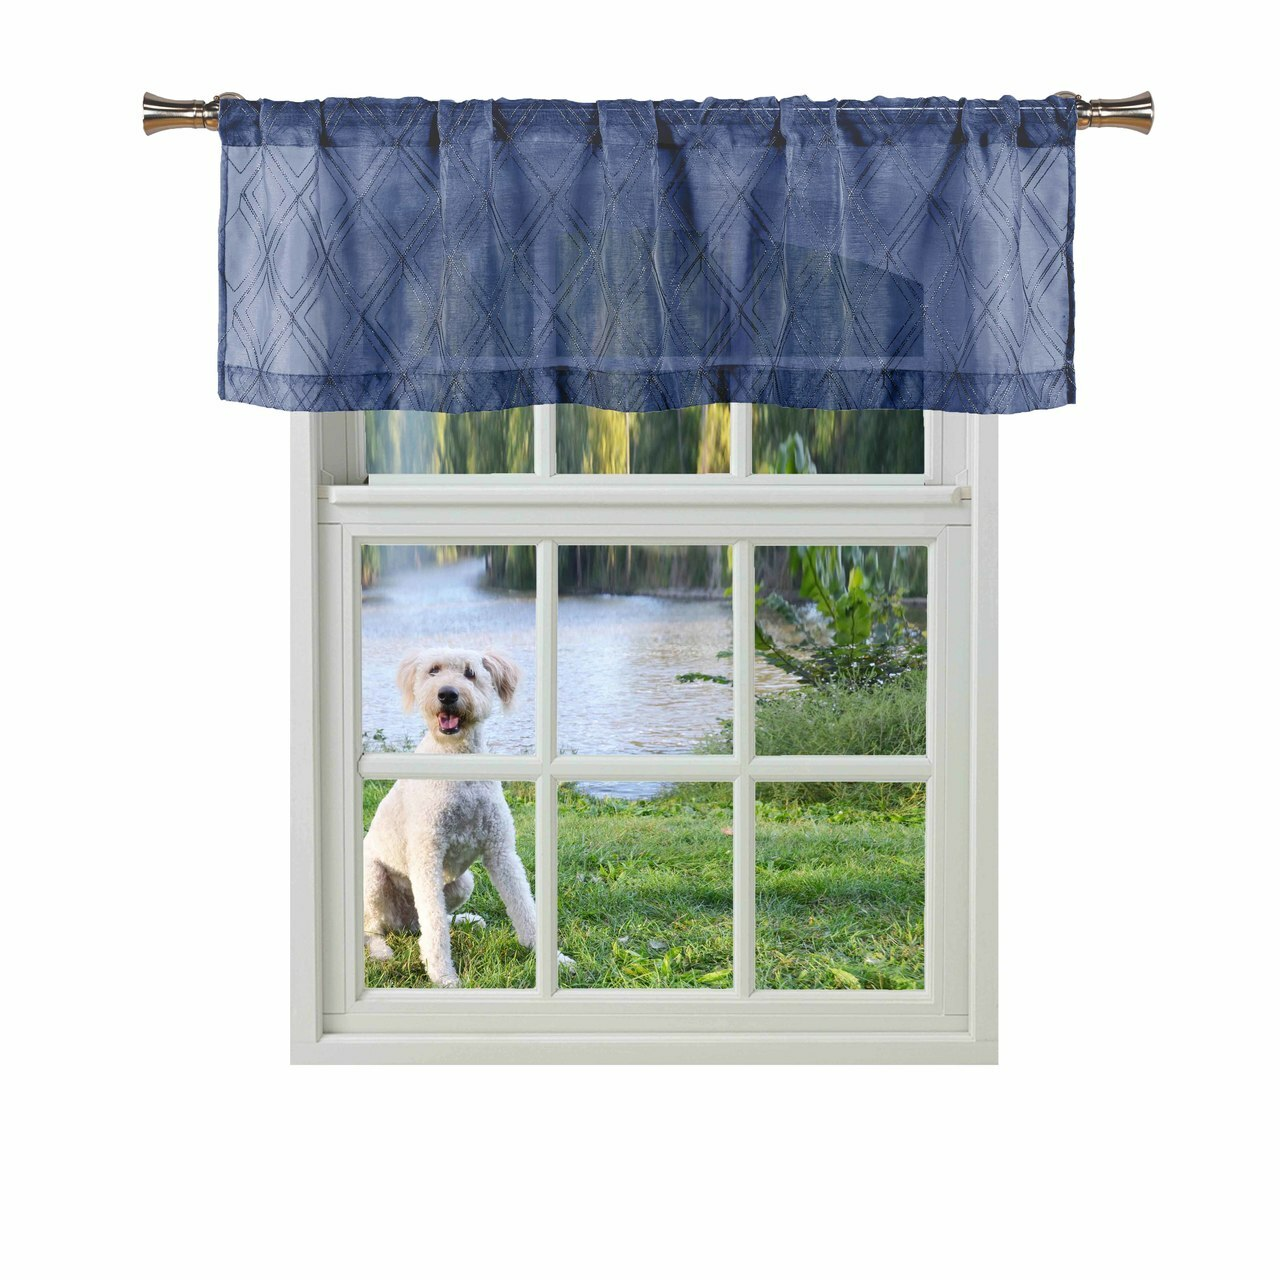 Bathroom And More Adley Collection Navy Blue Sheer Window Curtain Valance Embroidered Diamond Trellis Design With Navy Blue And Metallic Silver Thread Single 1 Valance 56in W X 15in L My